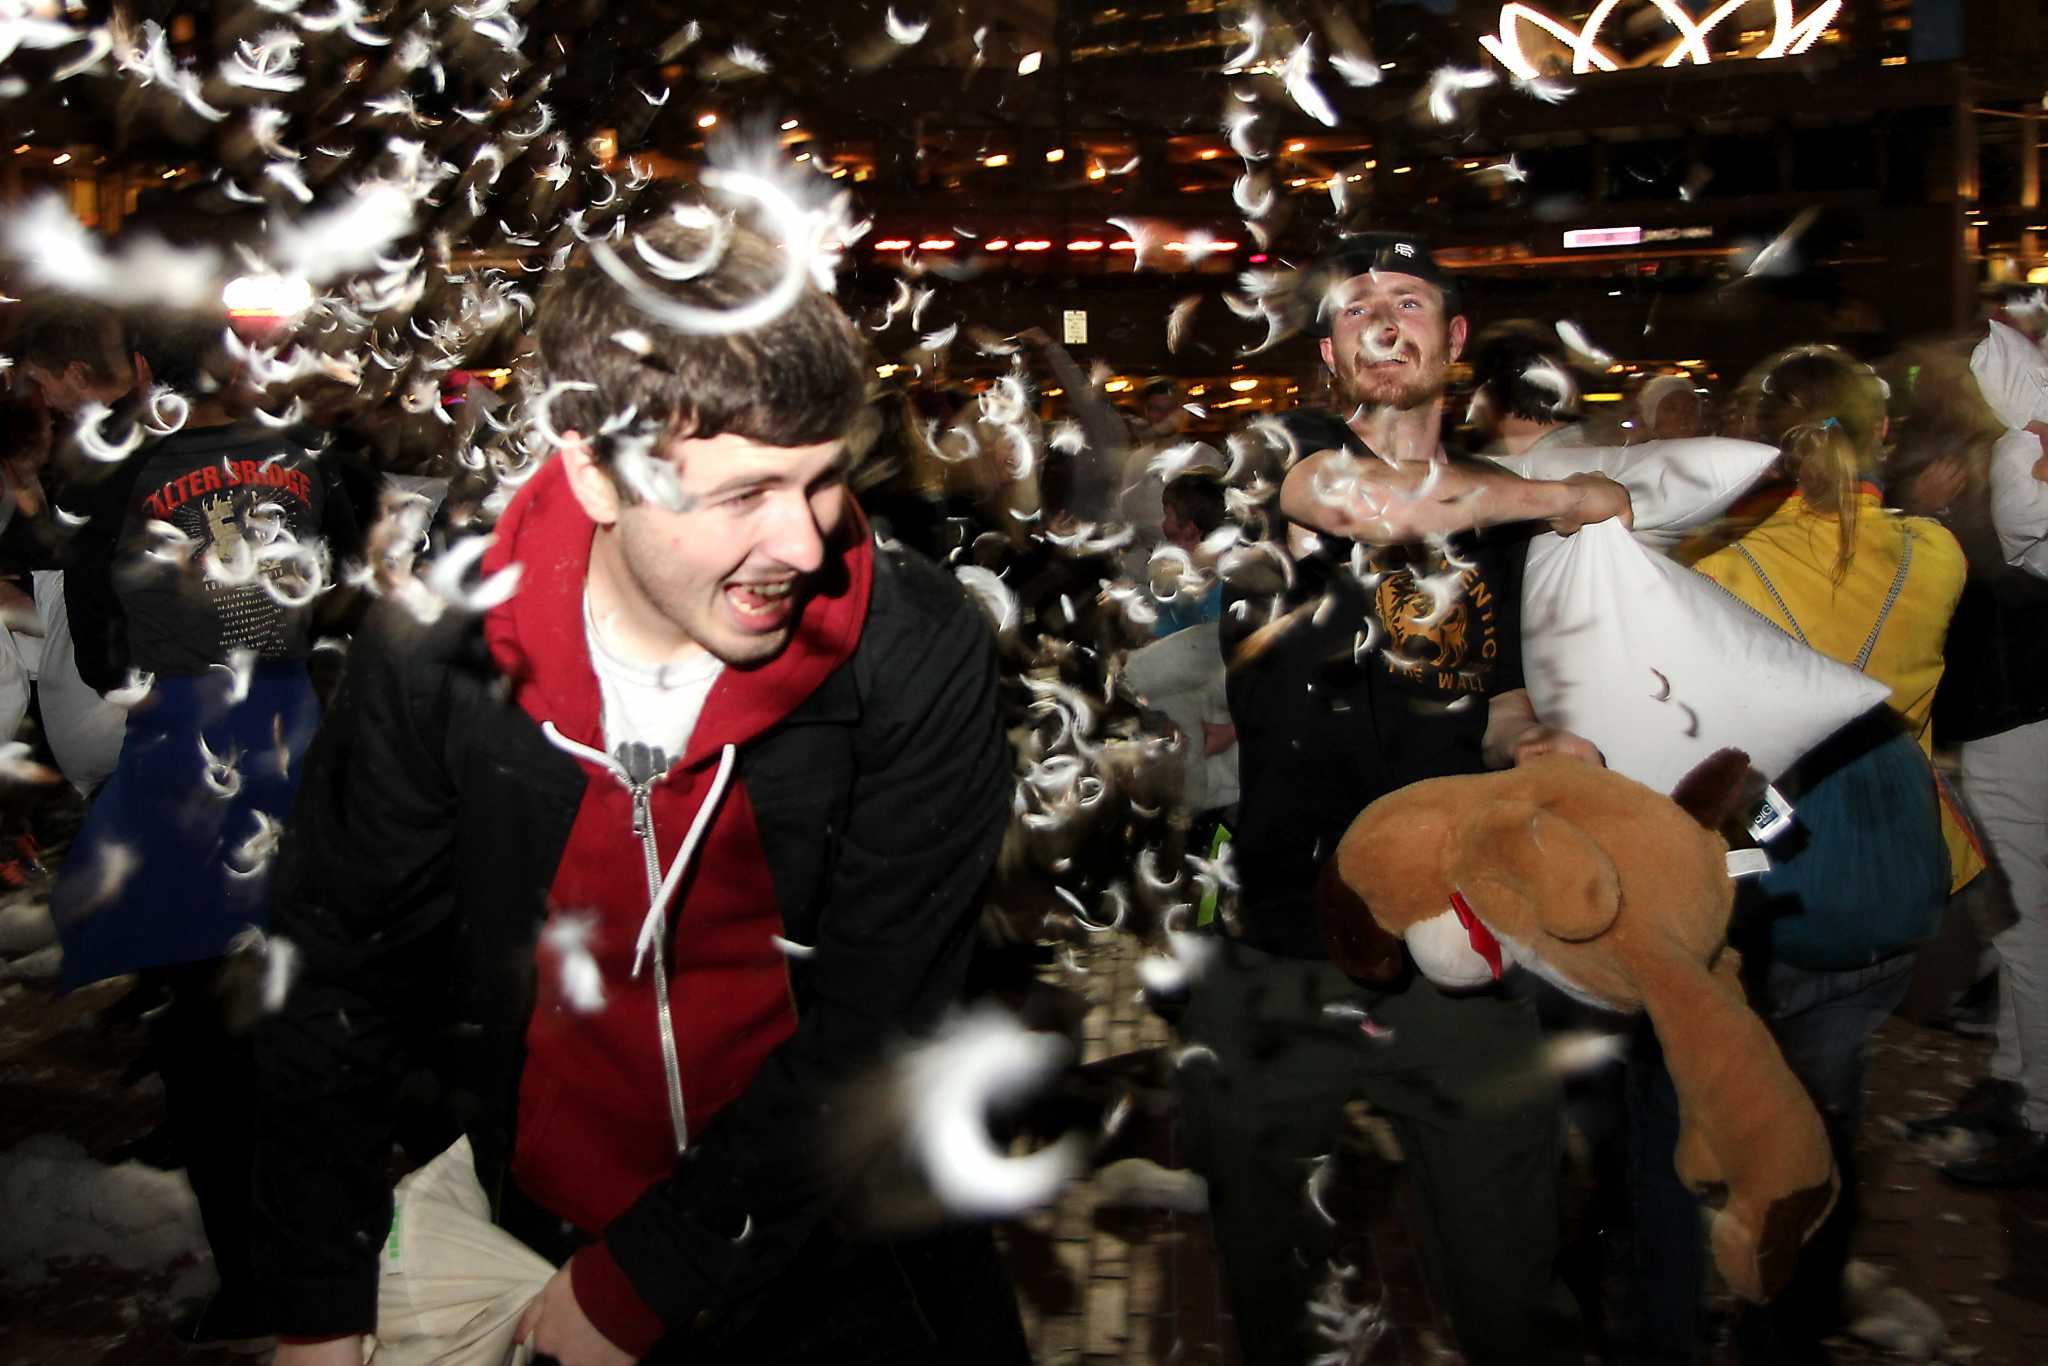 Hundreds of people swing pillows at each other at the Valentines Day massive pillow fight at Justin Herman Plaza in San Francisco, Calif. on Tuesday, Feb. 14, 2017. (Photo courtesy of George Morin)